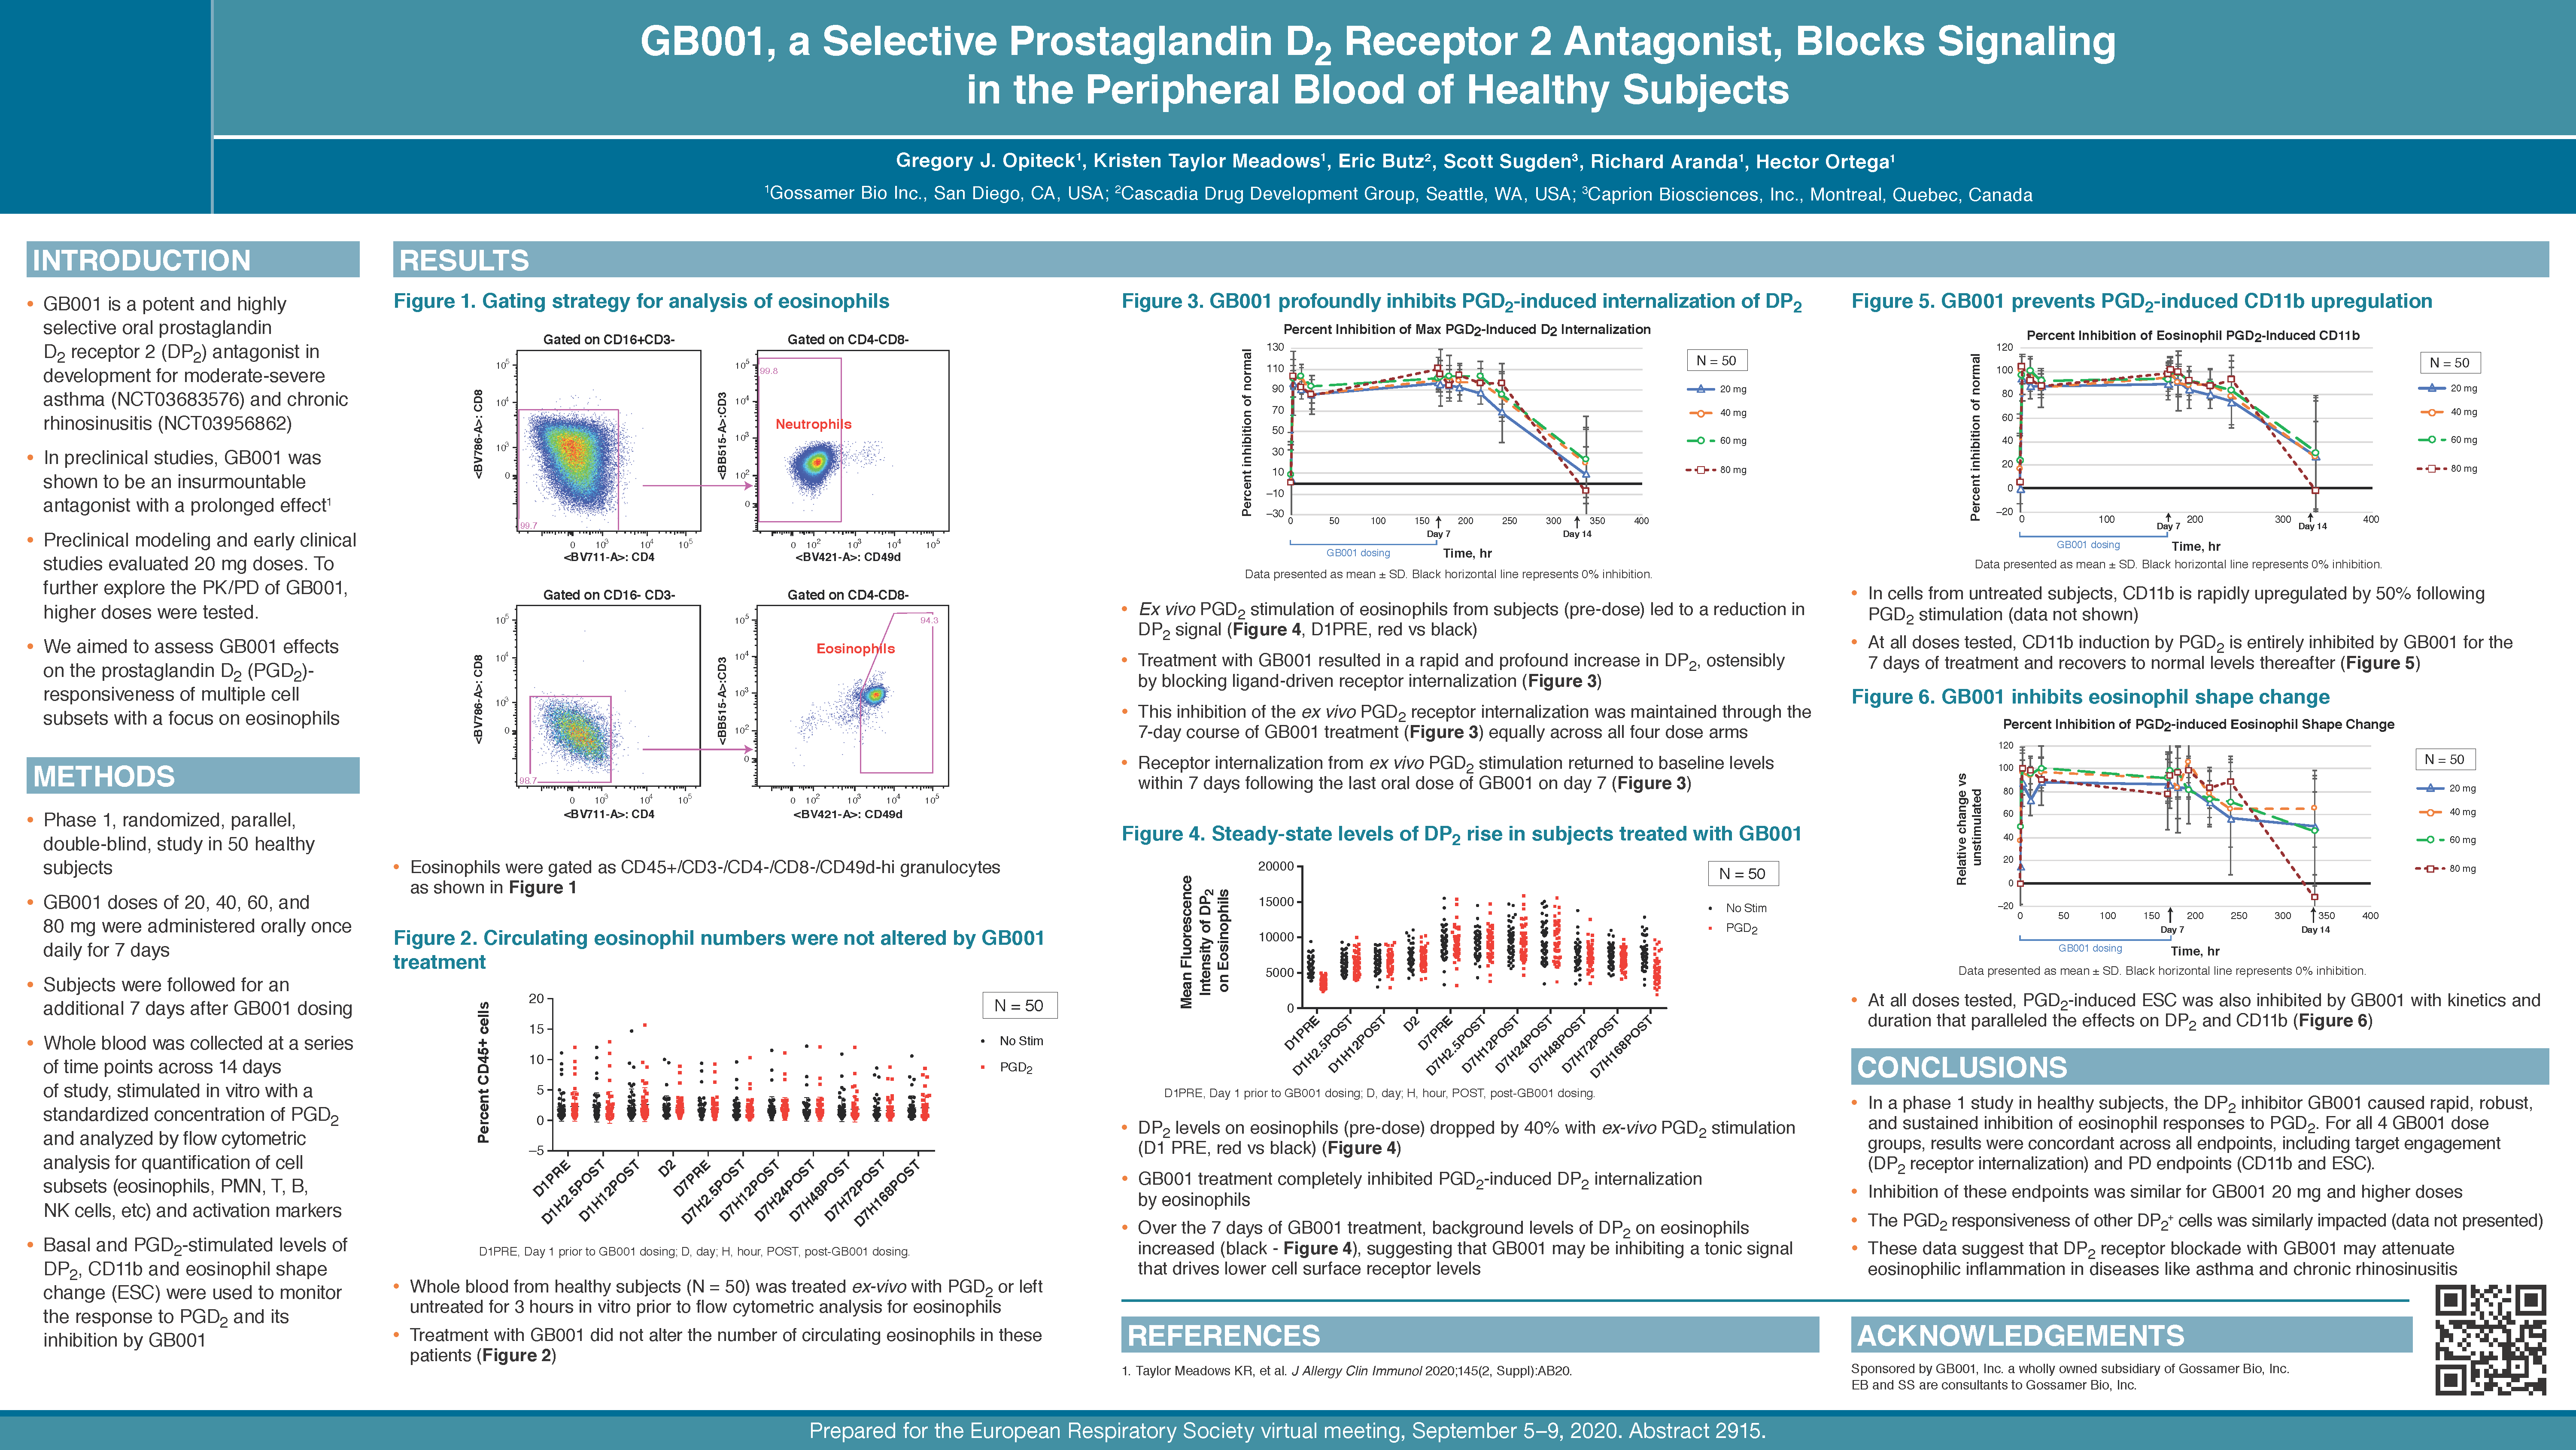 title-GB001, a Selective Prostaglandin D2 Receptor 2 Antagonist, Blocks Signaling in the Peripheral Blood of Healthy Subjects